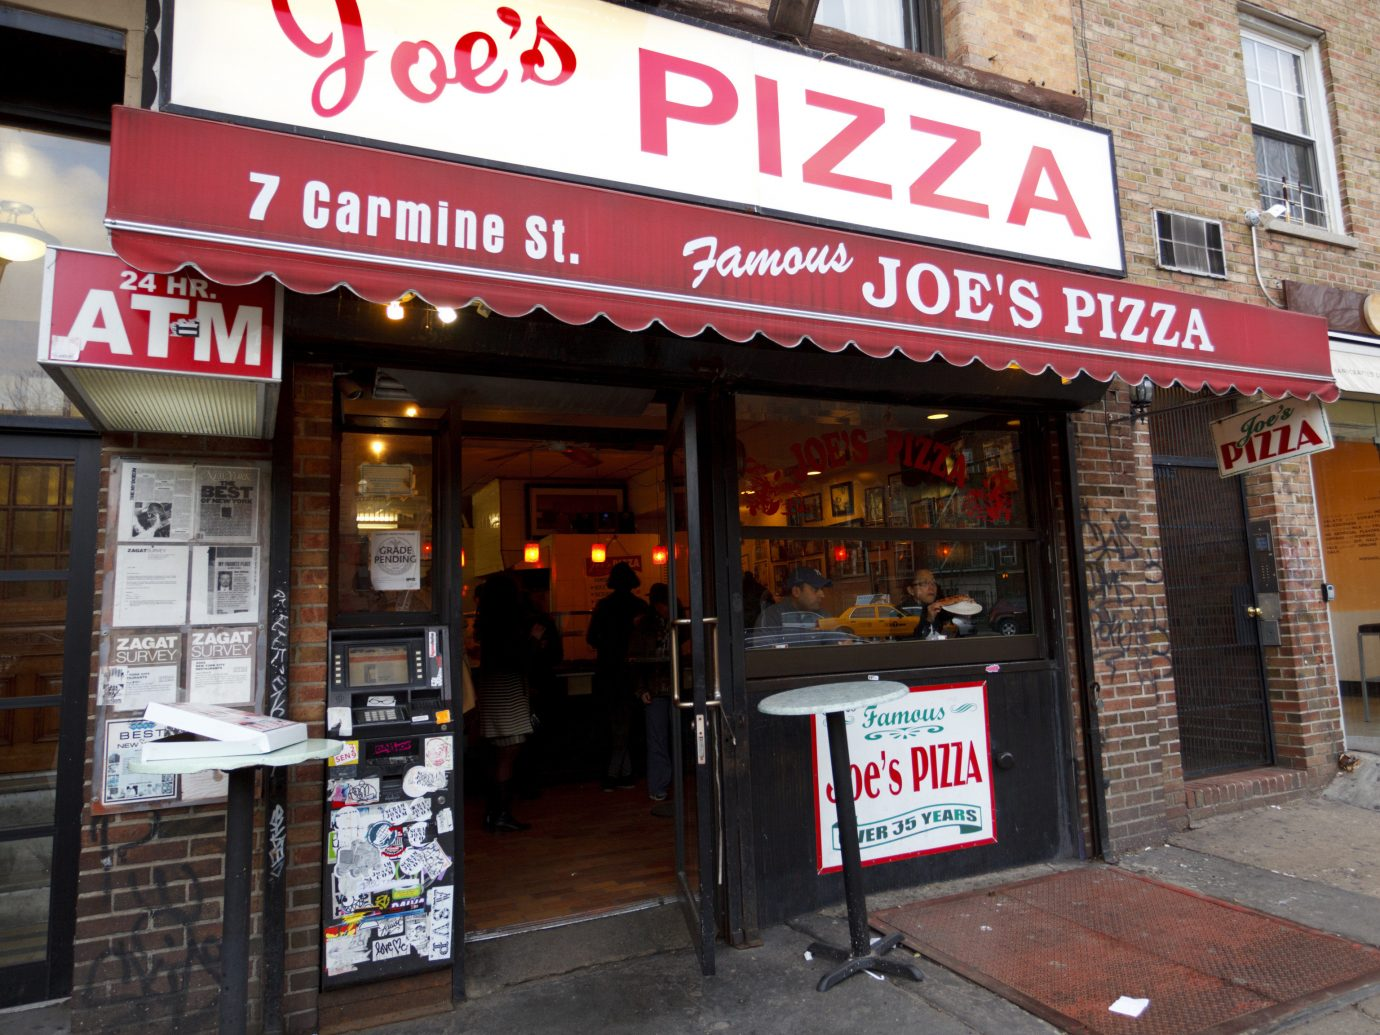 Brooklyn Food + Drink NYC City retail street shopping facade signage window service advertising